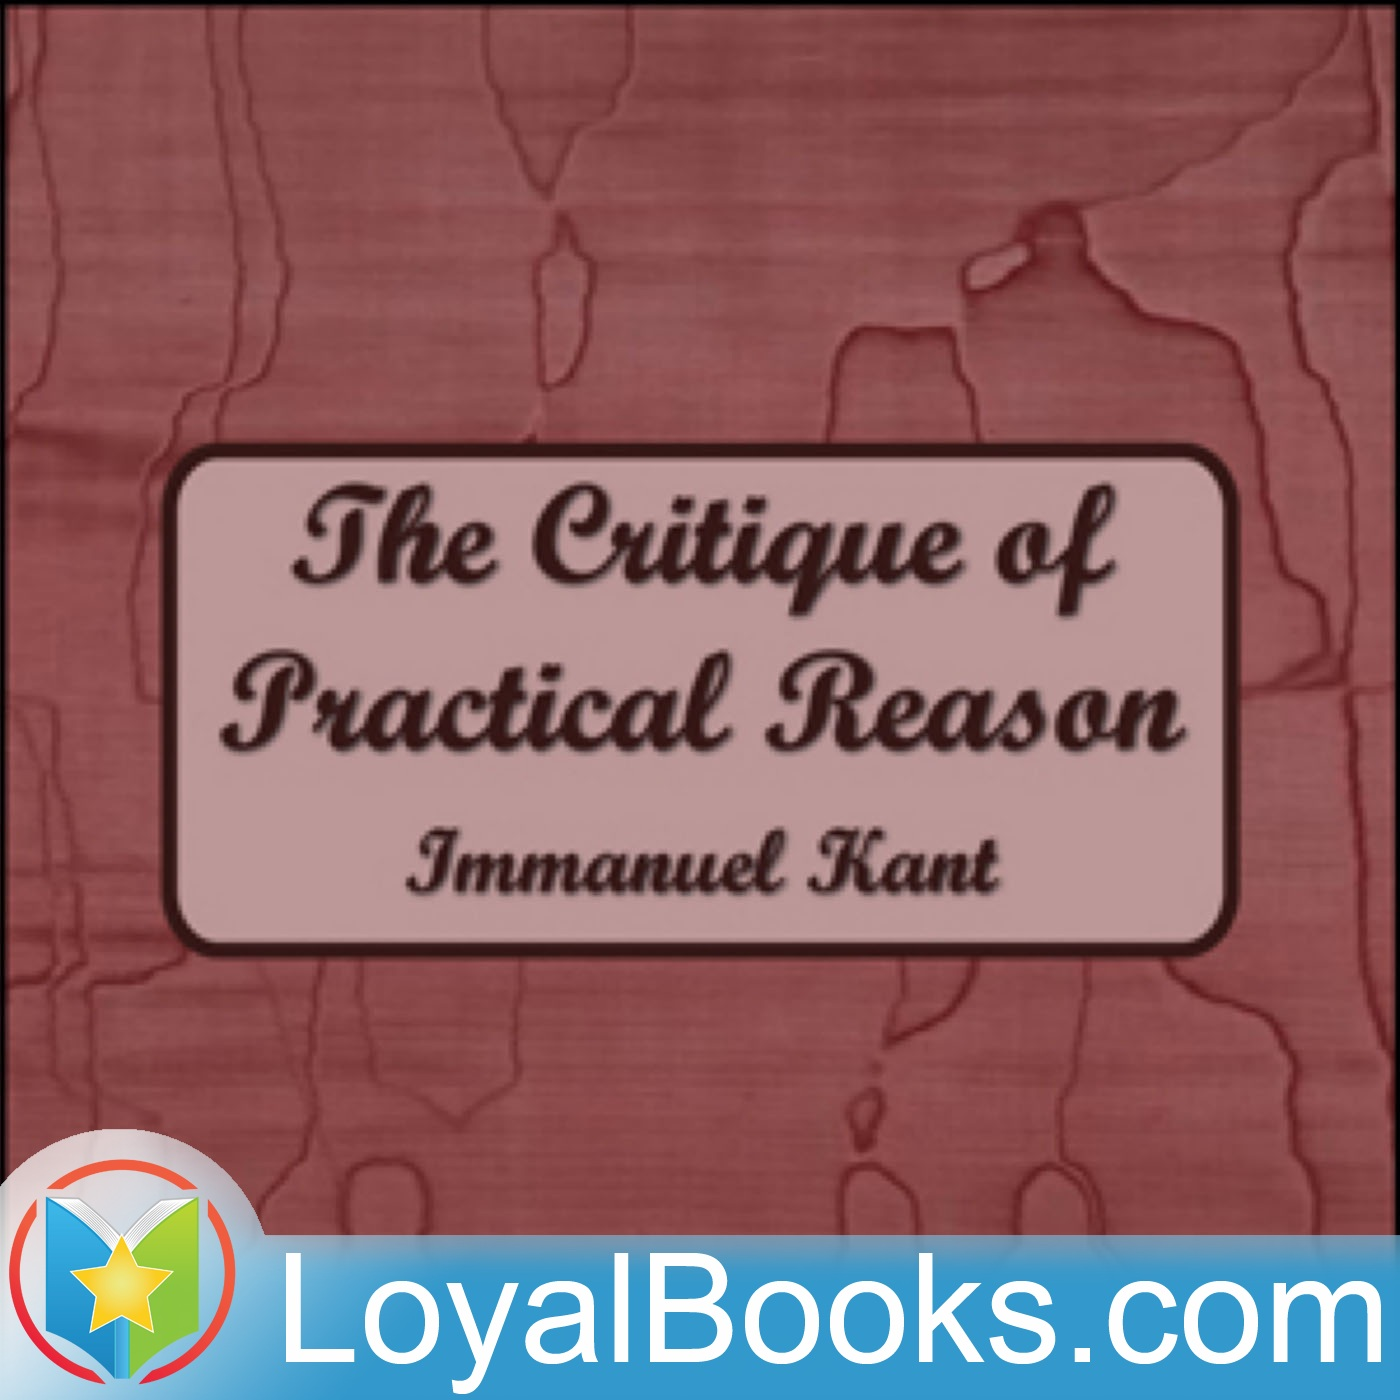 <![CDATA[The Critique of Practical Reason by Immanuel Kant]]>